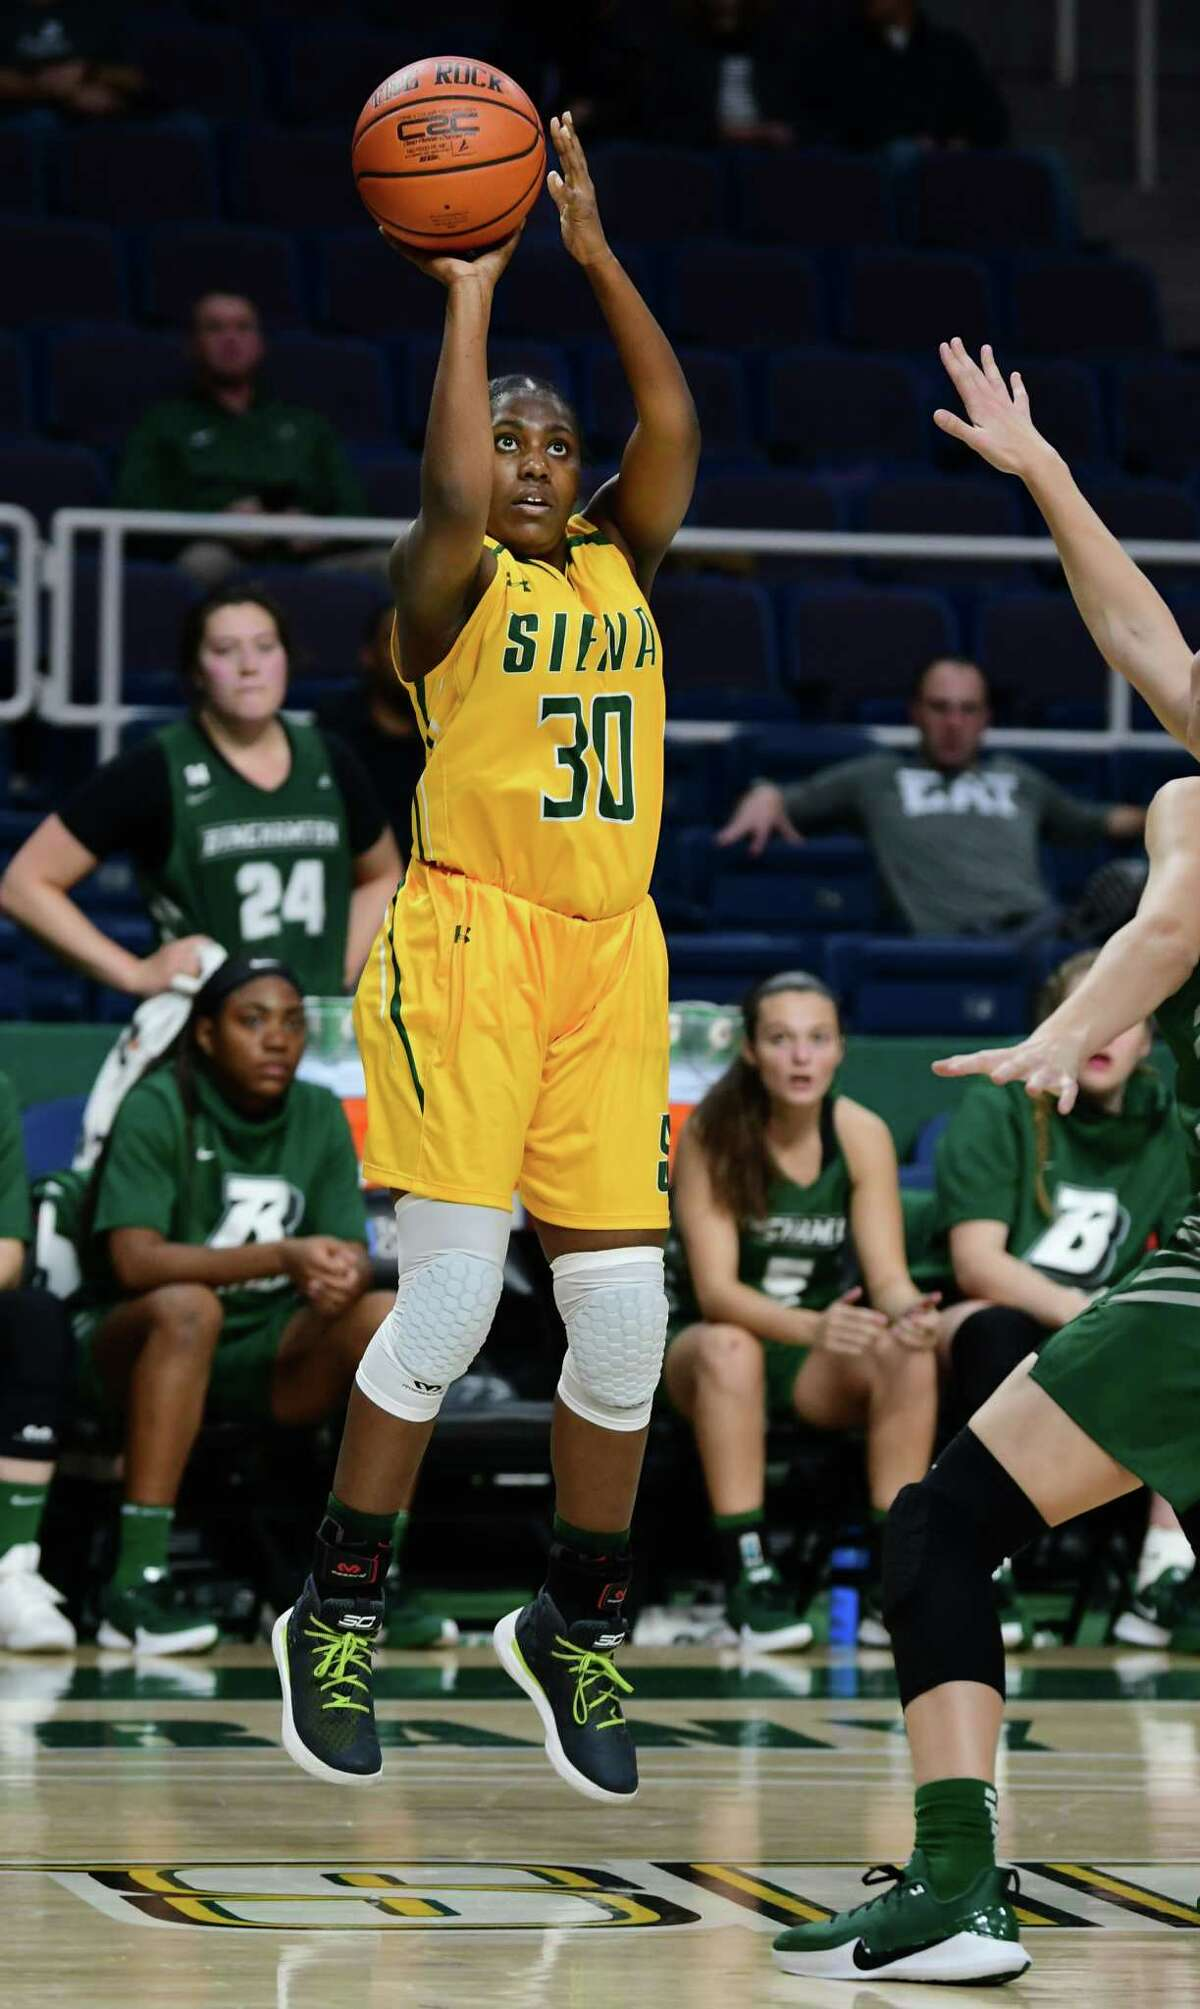 Siena's Ashley Williamson takes a shot during a basketball game against Binghamton at the Times Union Center on Tuesday, Nov. 5, 2019 in Albany, N.Y. (Lori Van Buren/Times Union)